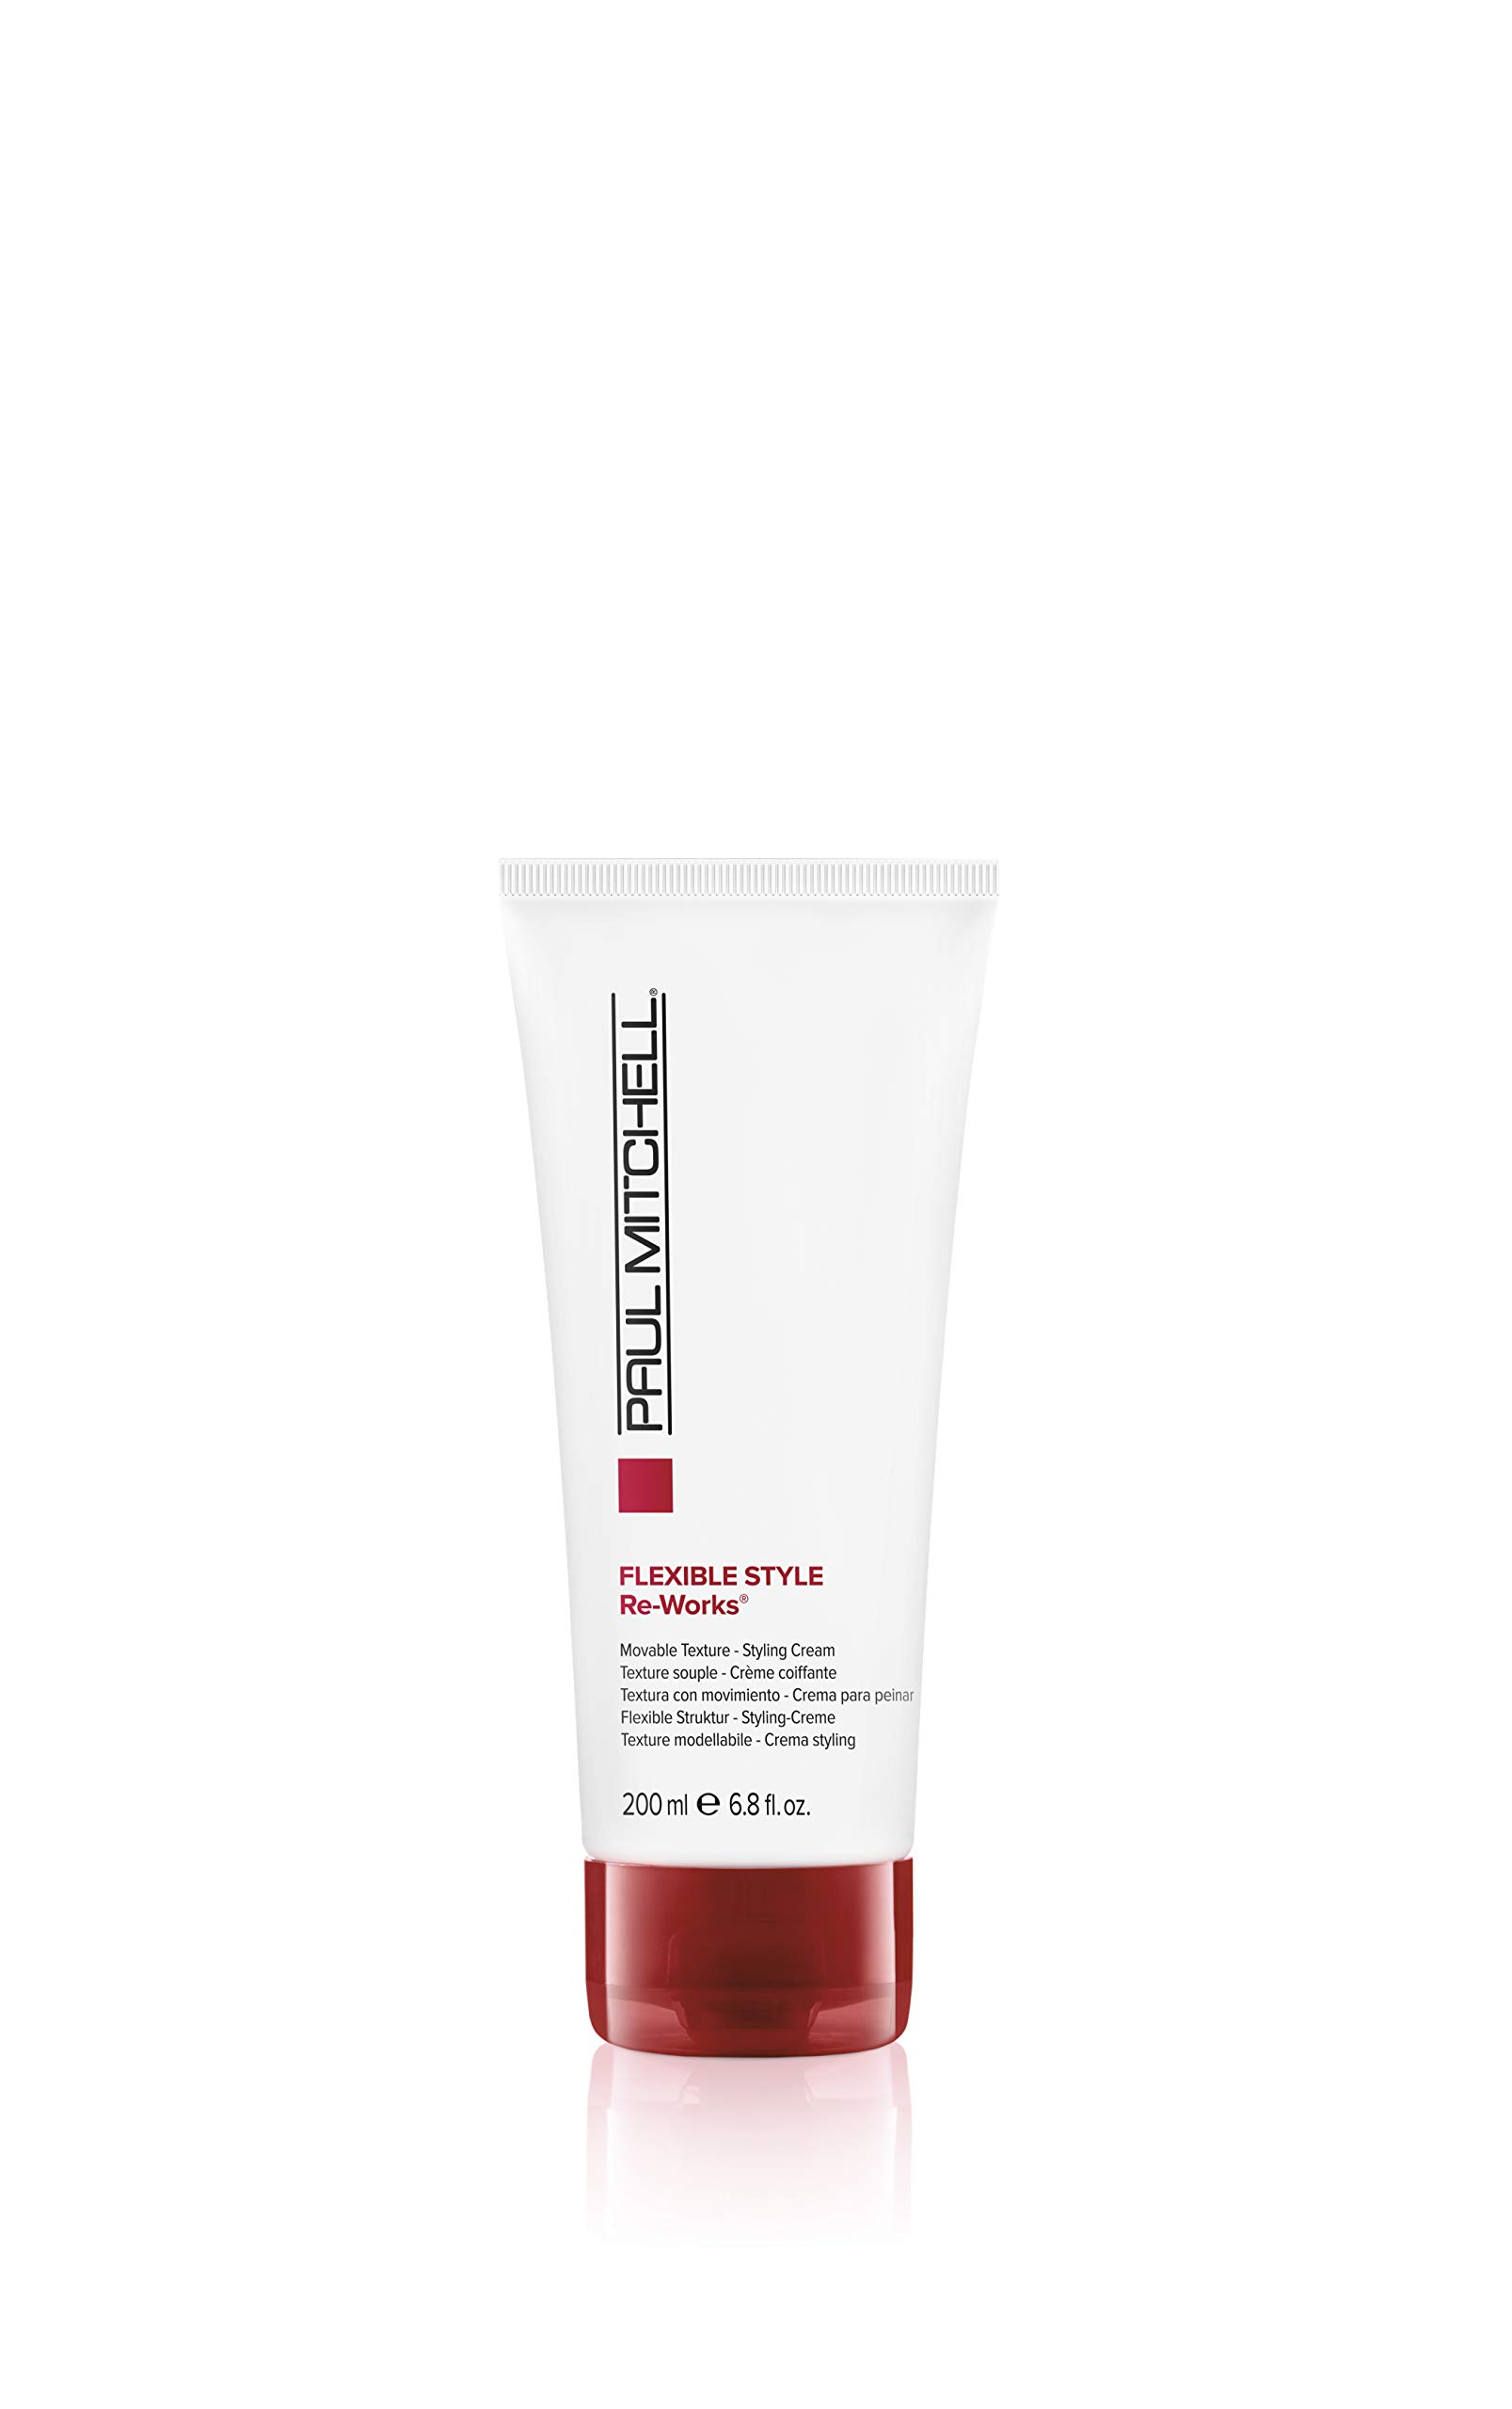 Paul Mitchell Re-Works Texture Cream,5.1 Fl Oz by Paul Mitchell